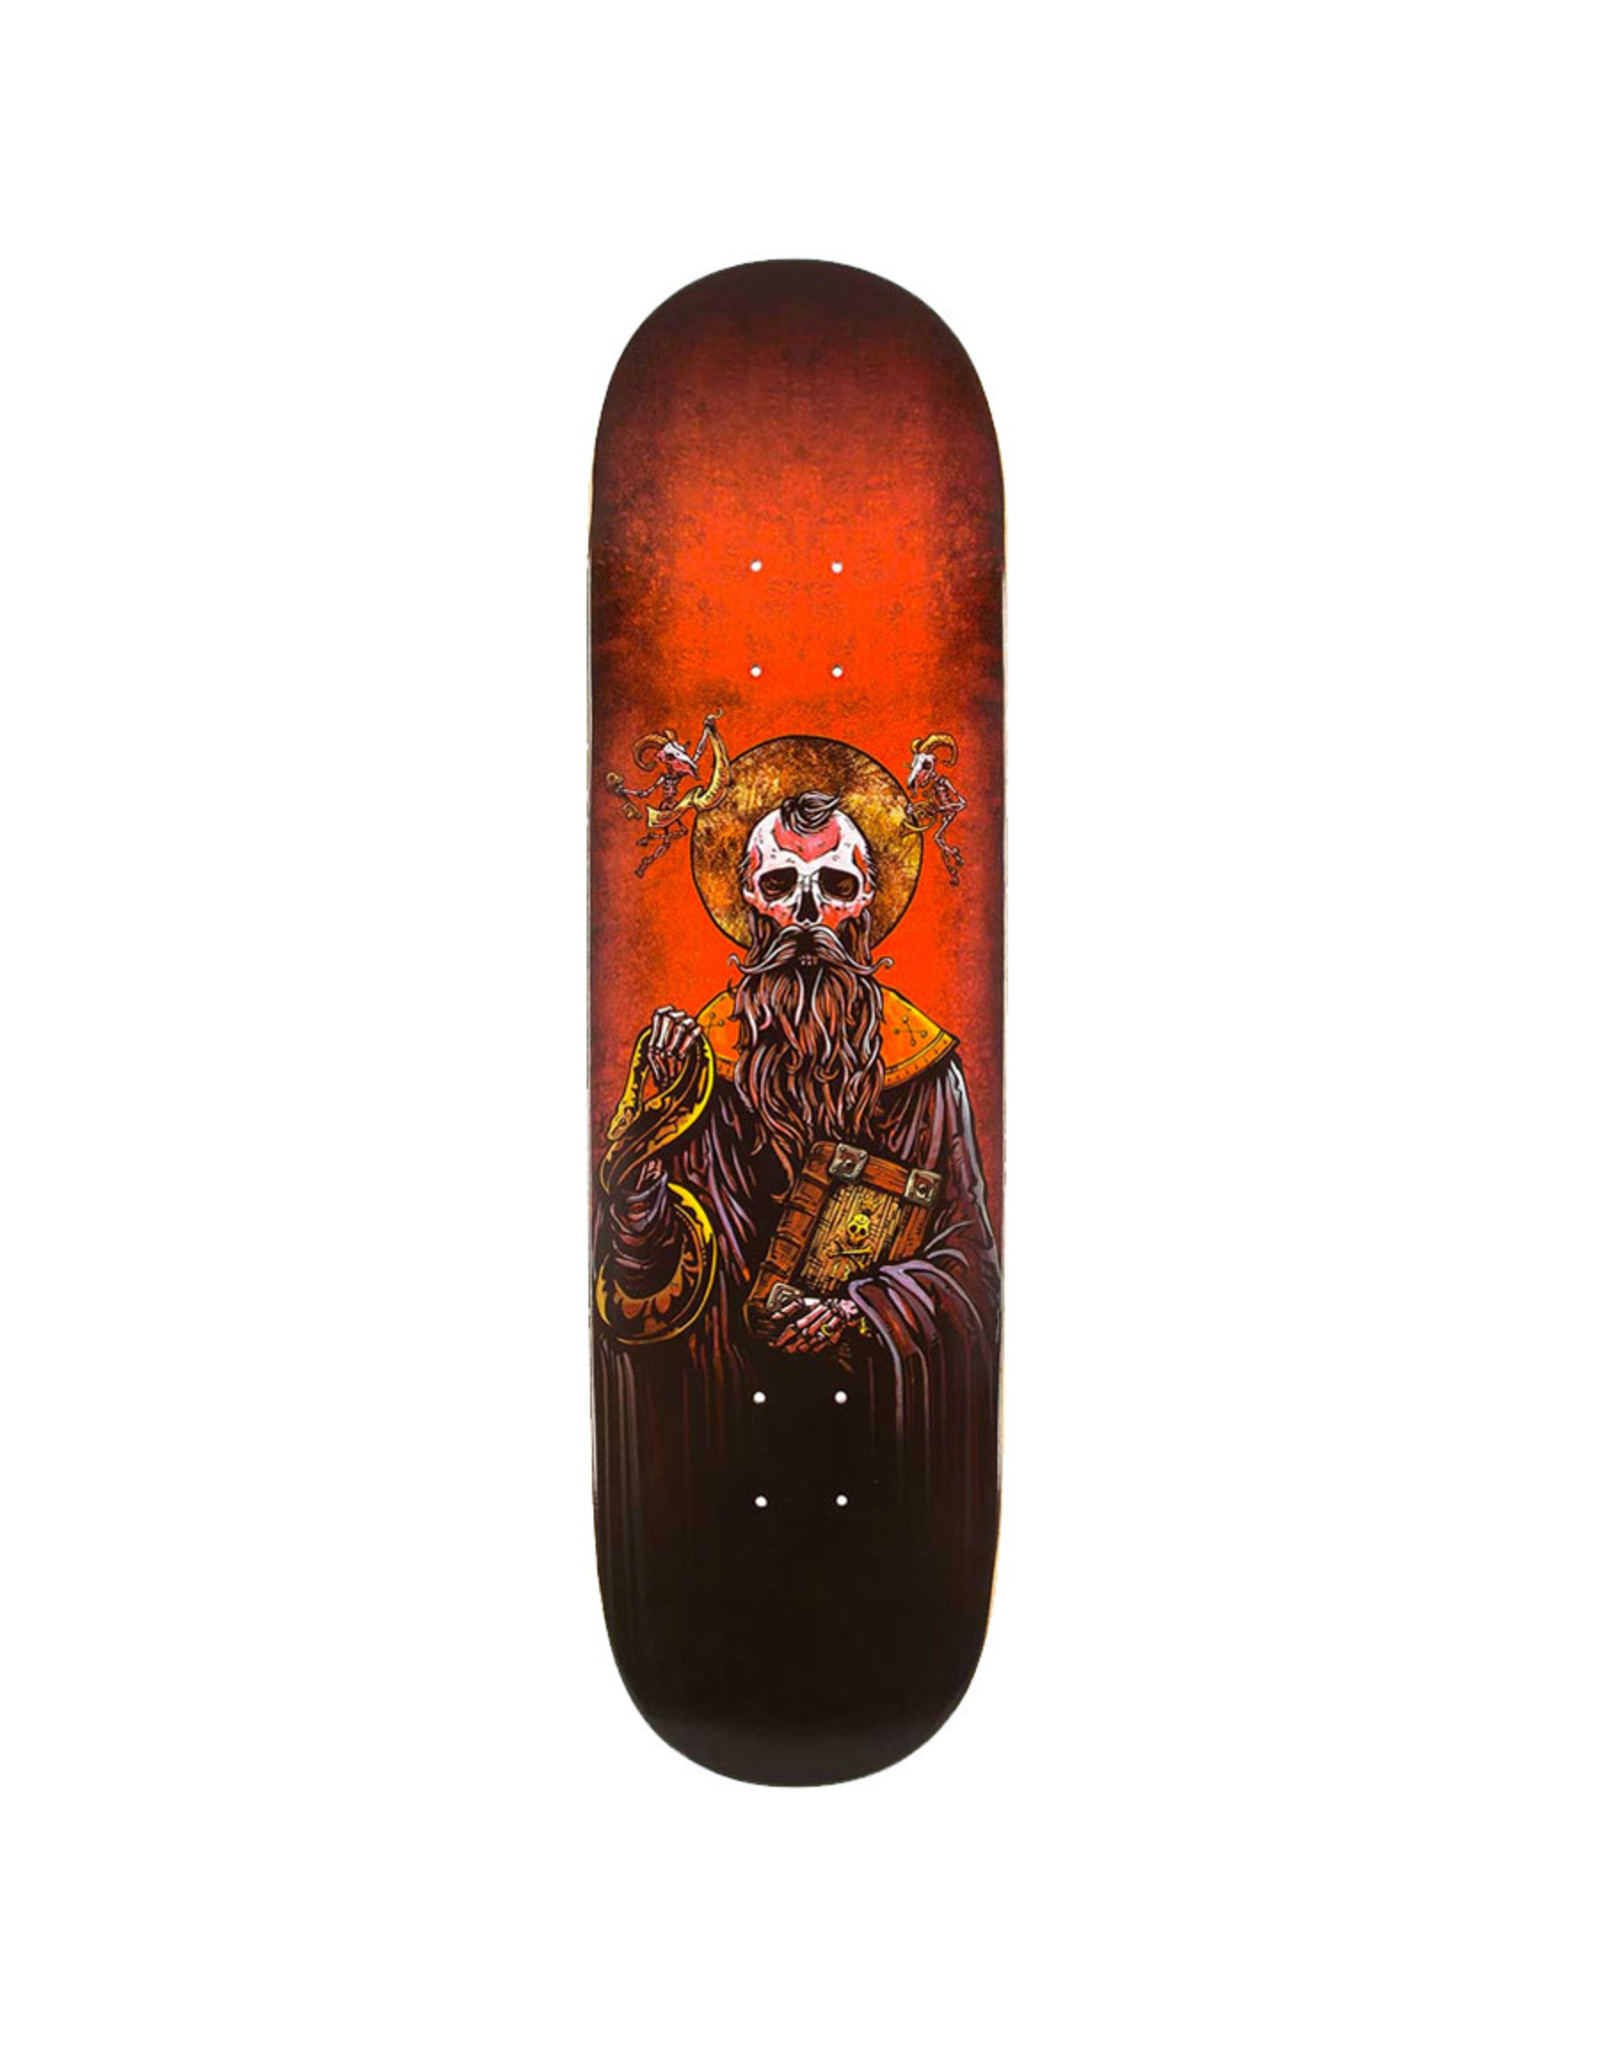 Techne Skateboards Techne Deck Saint Of Sinners (9.0)